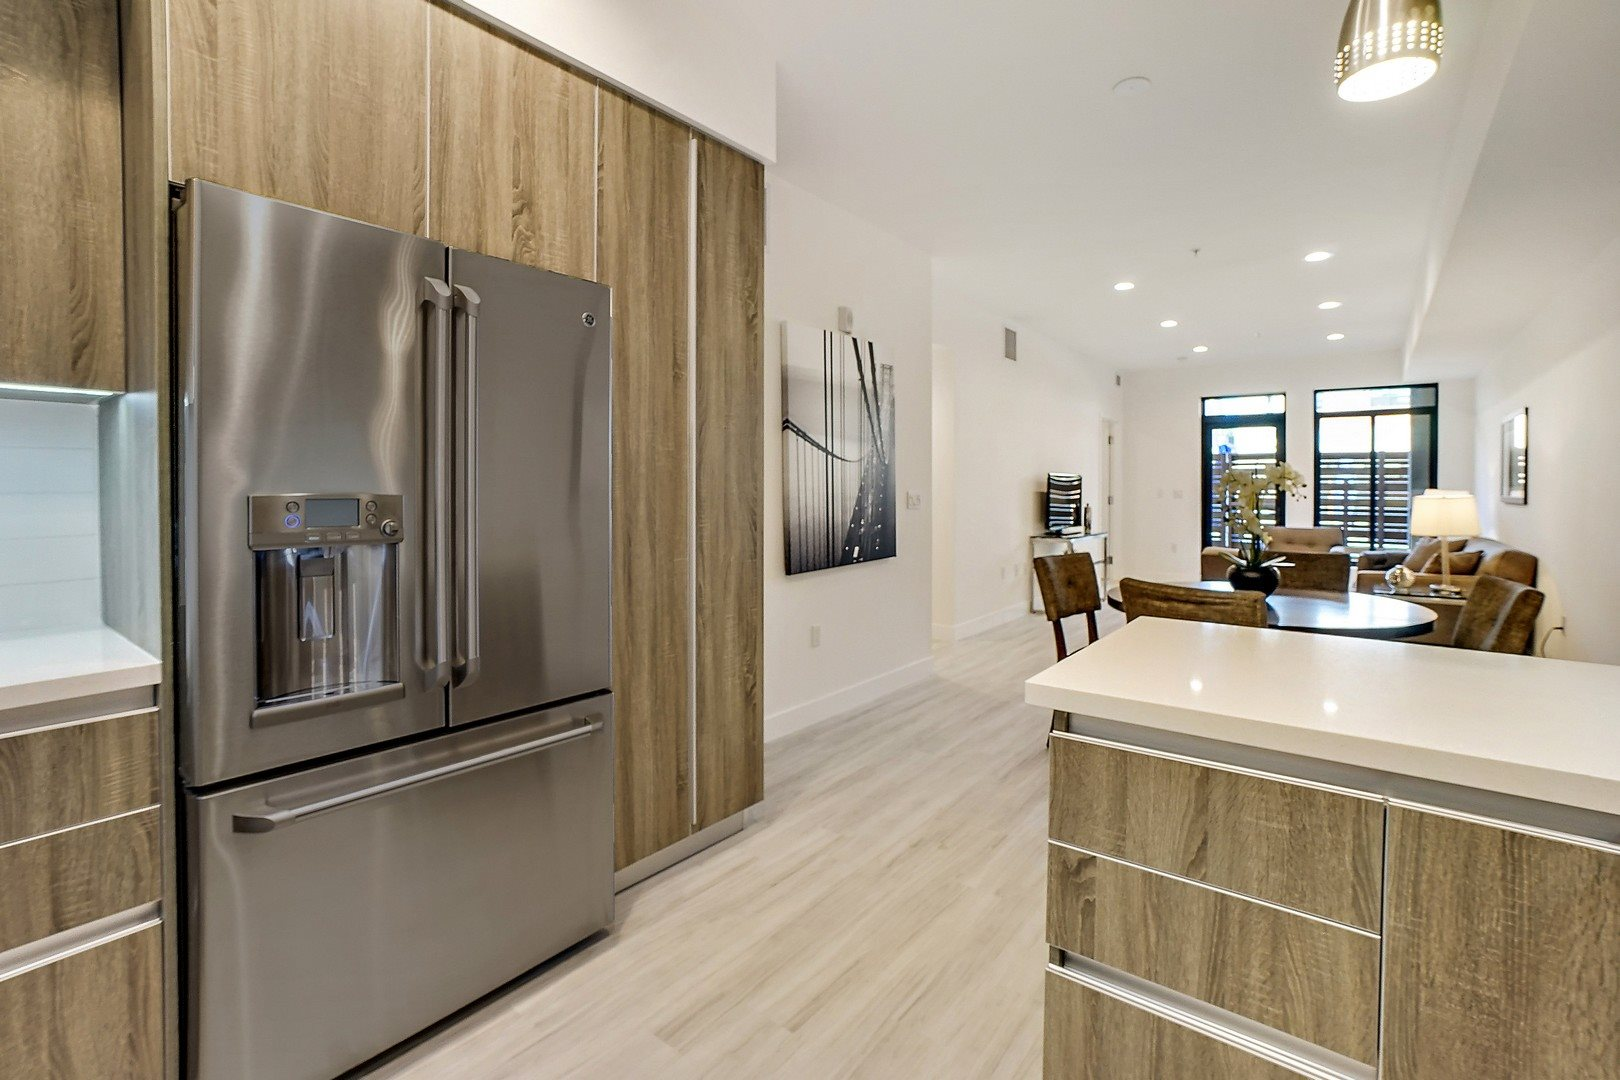 Luxury Lofts in Tarzana CA - The Residences at Village Walk Kitchen